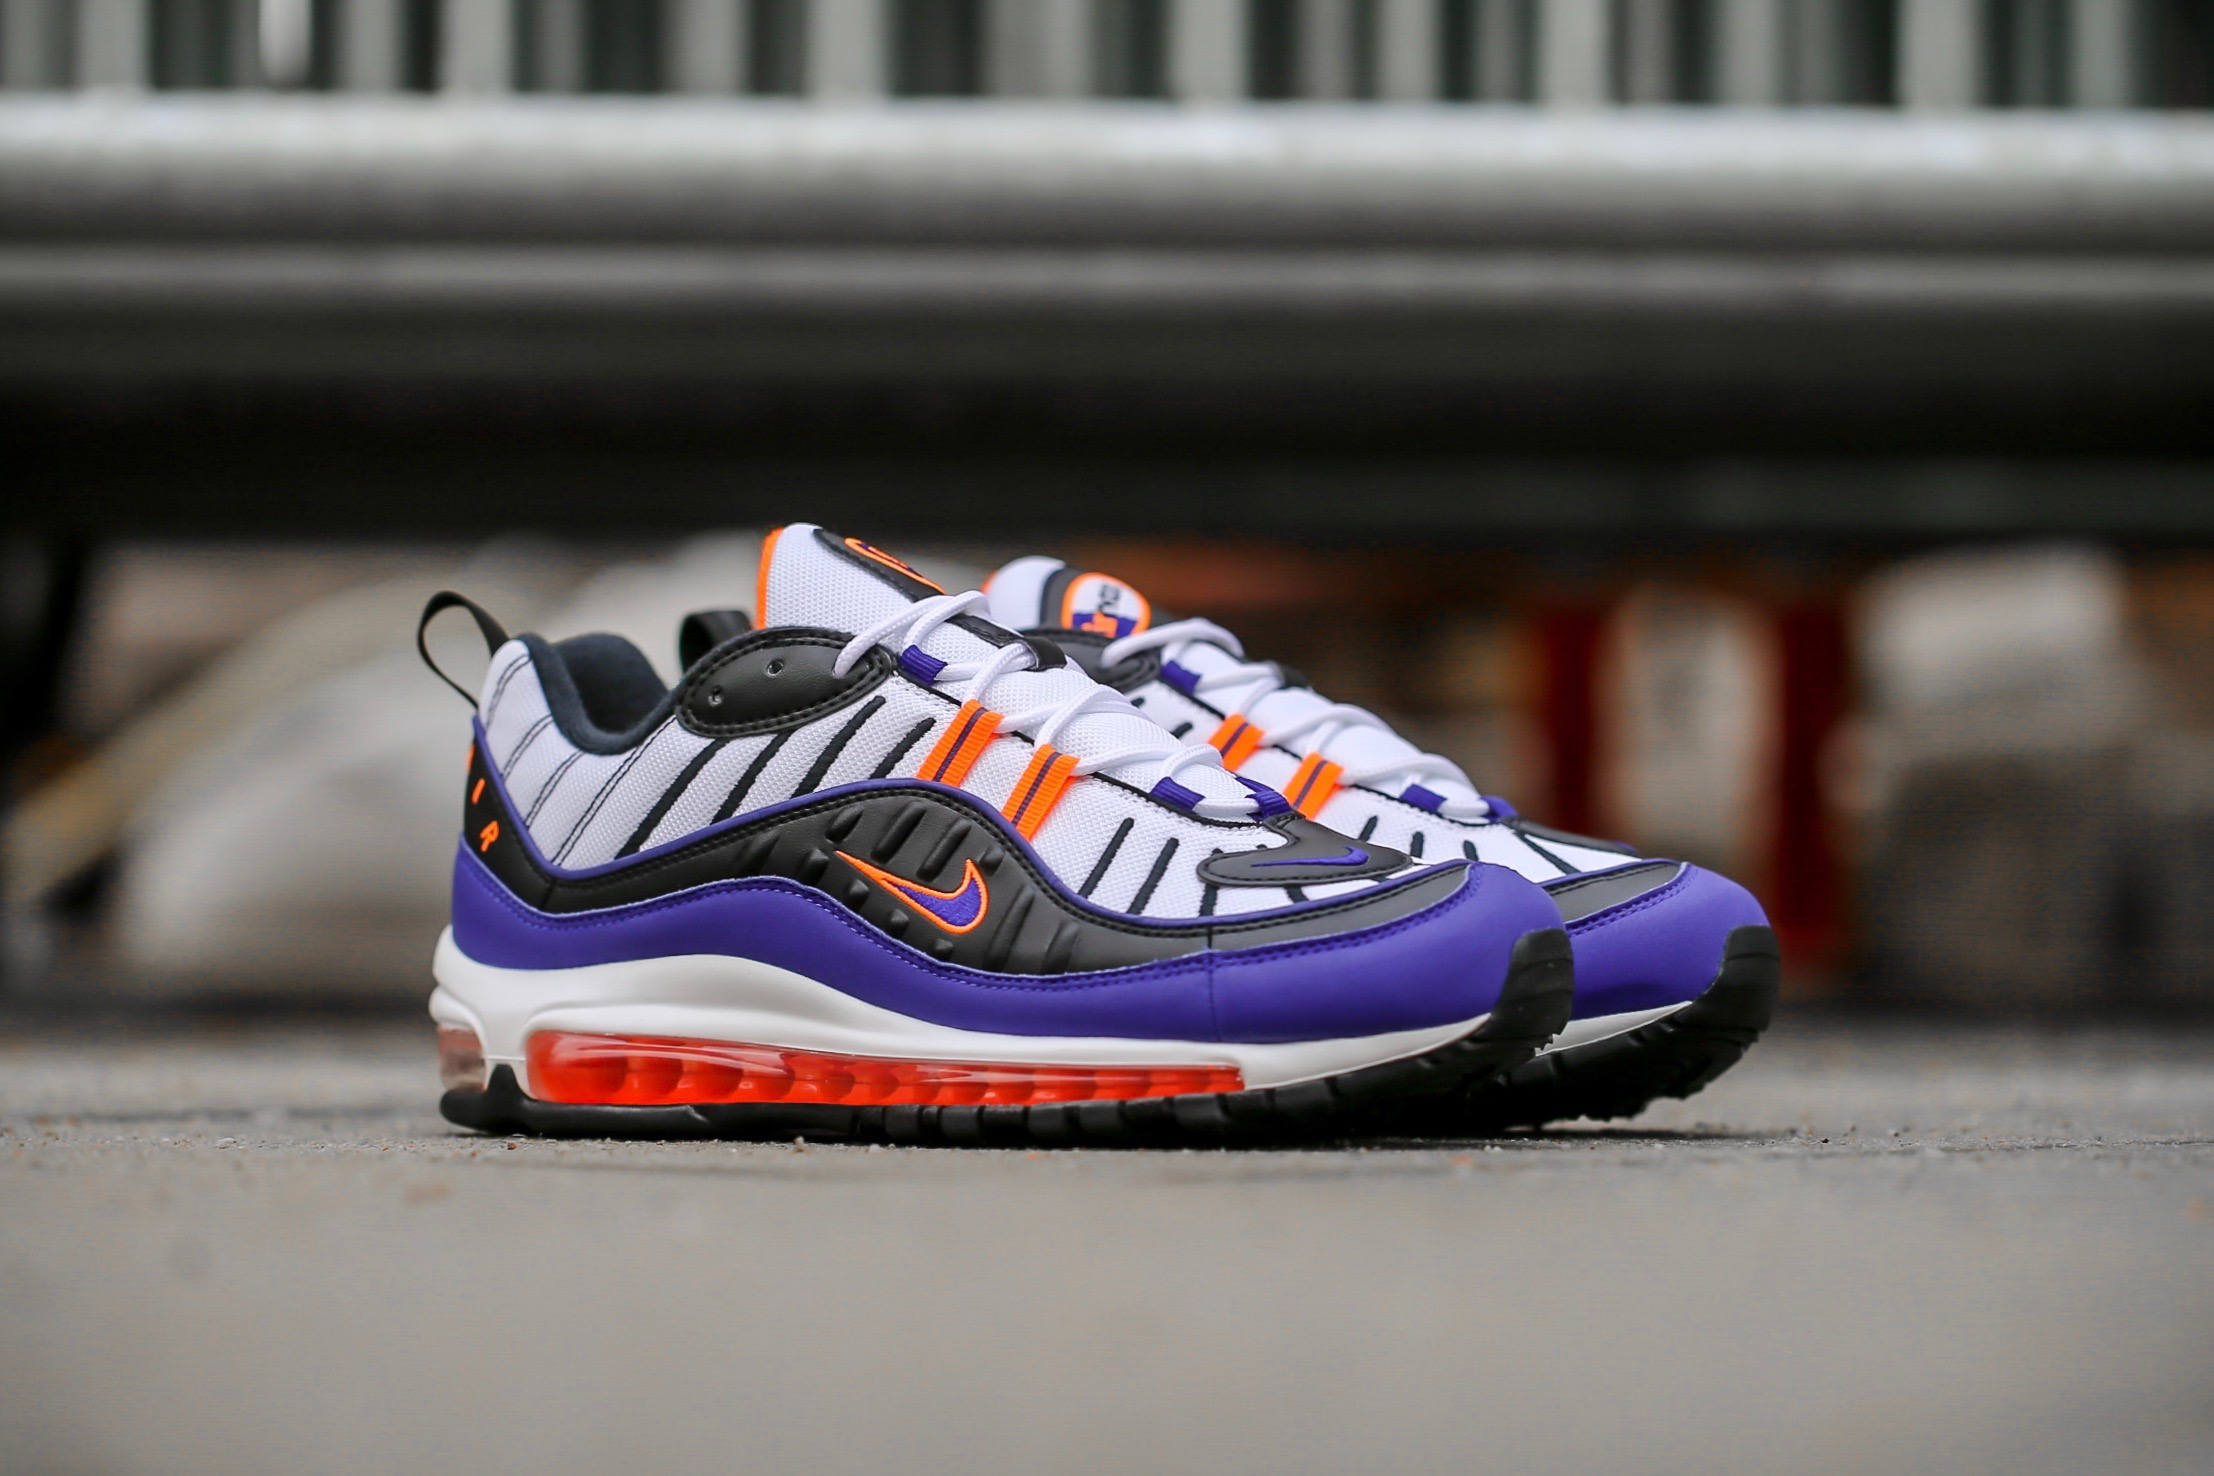 7c075d18eb Nike Air Max 98 – White / Deep Royal Blue / Total Orange – STASP